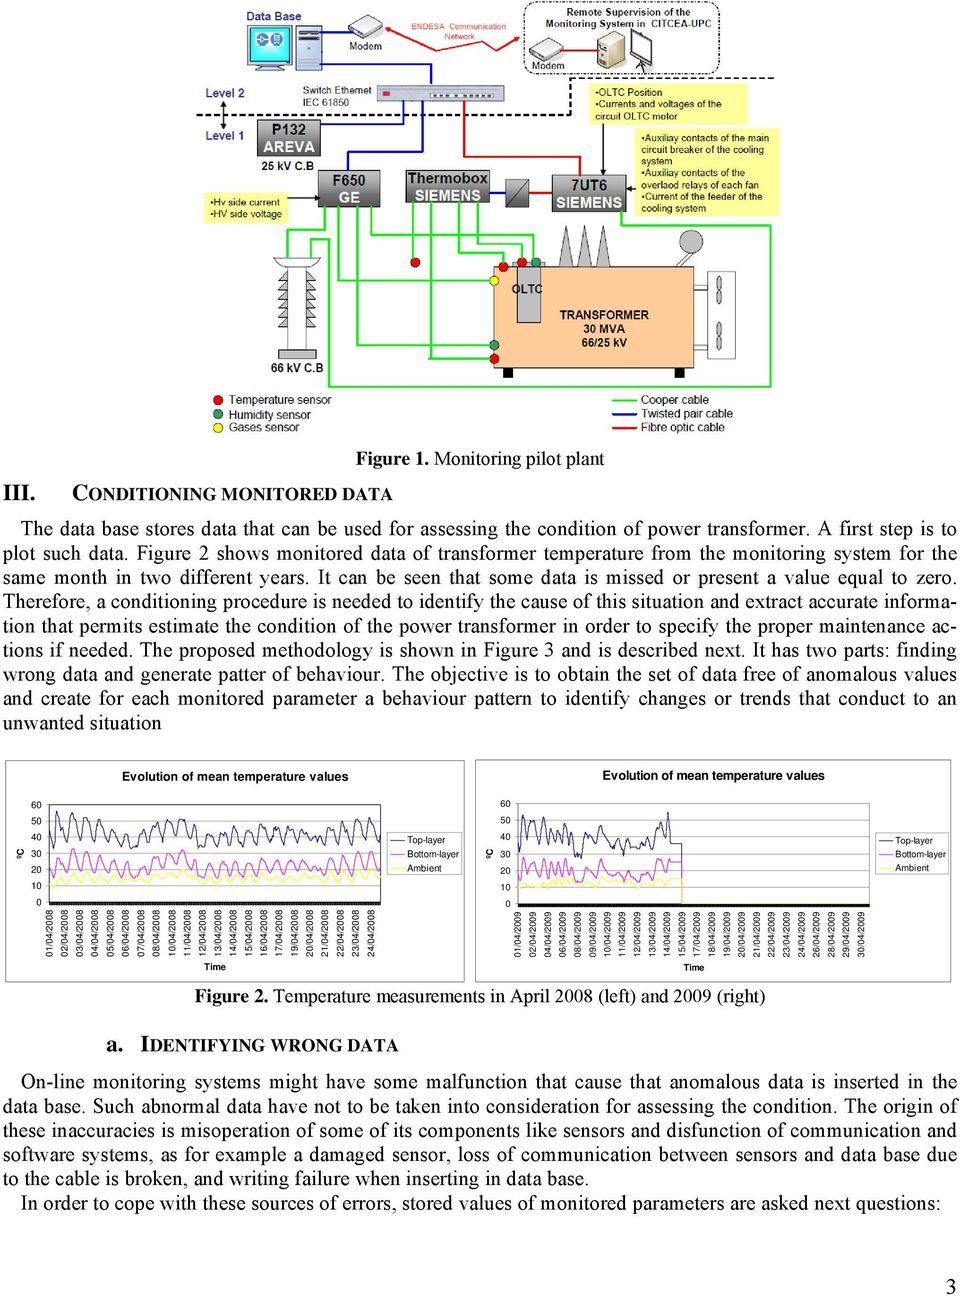 Therefore, a conditioning procedure is needed to identify the cause of this situation and extract accurate information that permits estimate the condition of the power transformer in order to specify